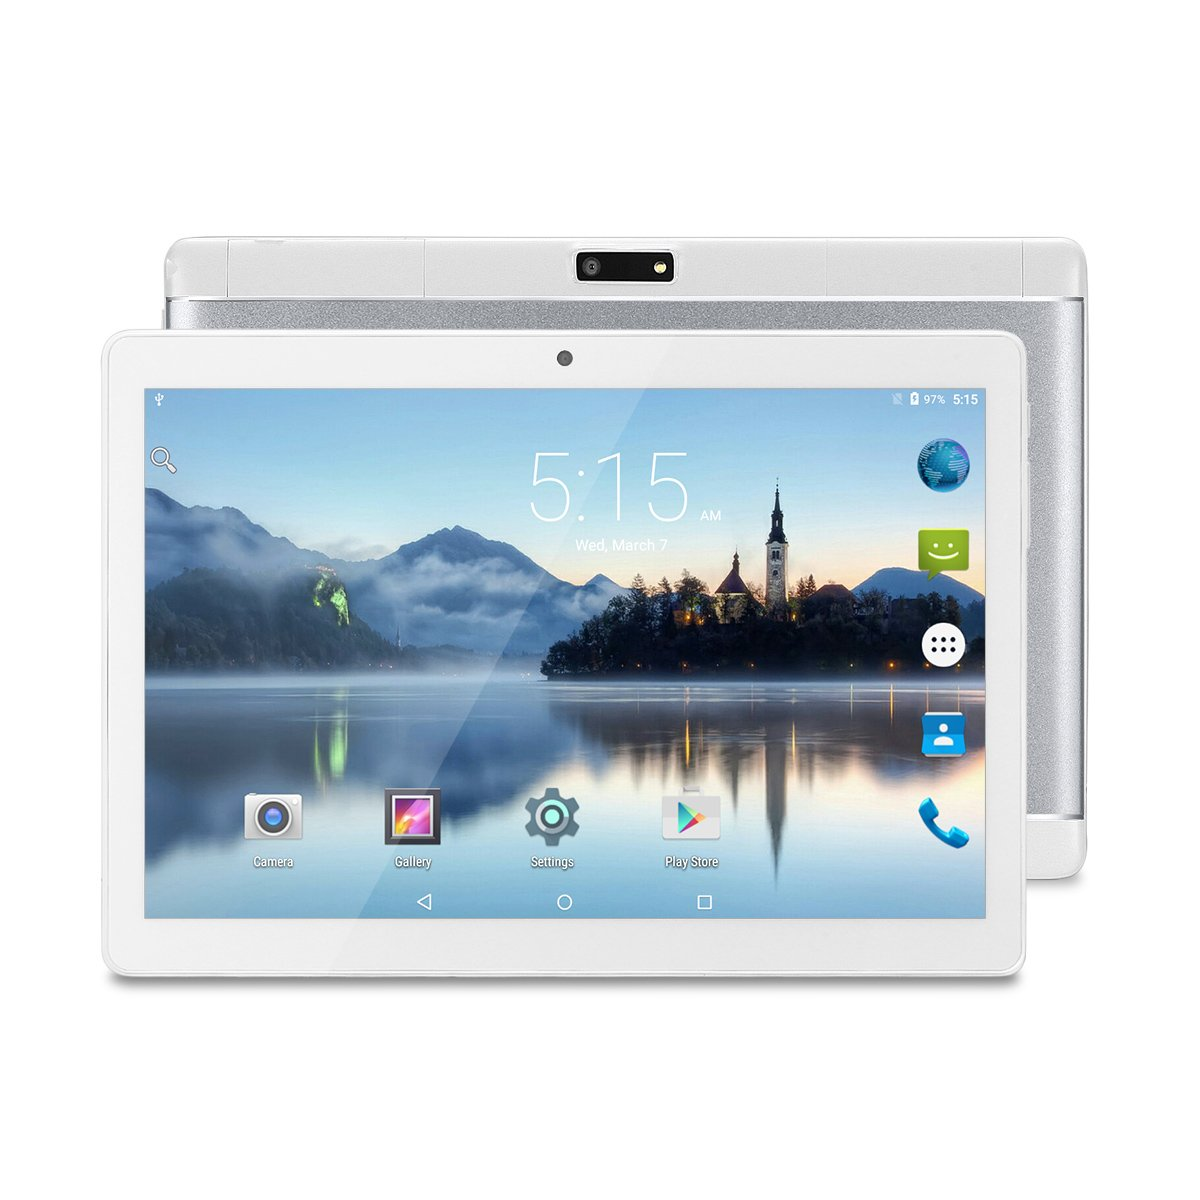 Collection Here 7 Inch Kids Android Tablets Pc Wifi Dual Camera Tab Gift For Baby And Kids Tab Pc 8gb Kids Tab Pc Tablet 7 8 9 10 10.1 Inch High Standard In Quality And Hygiene Computer & Office